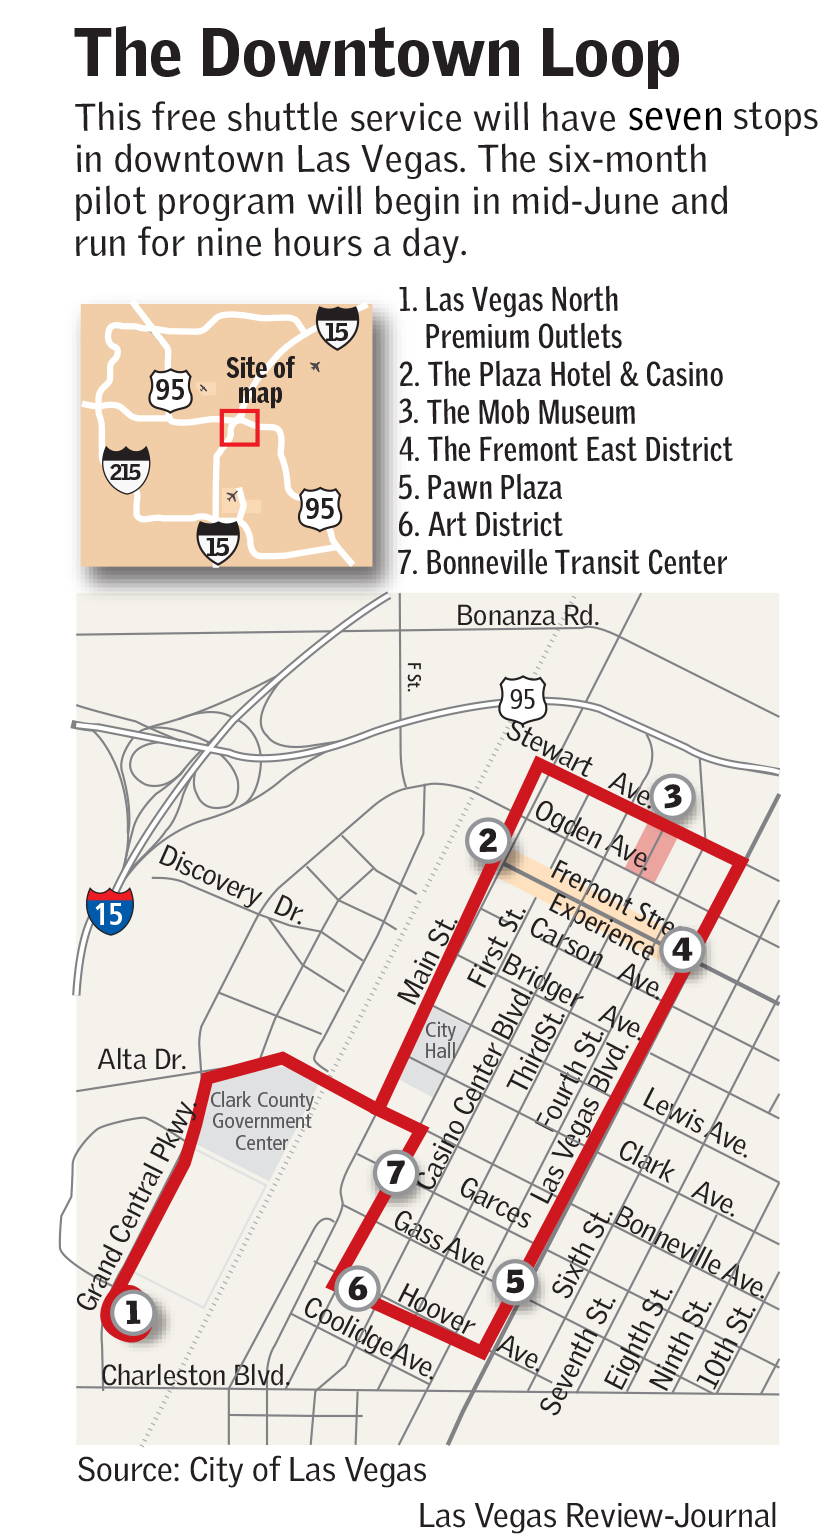 free downtown loop shuttle service to start | las vegas review-journal